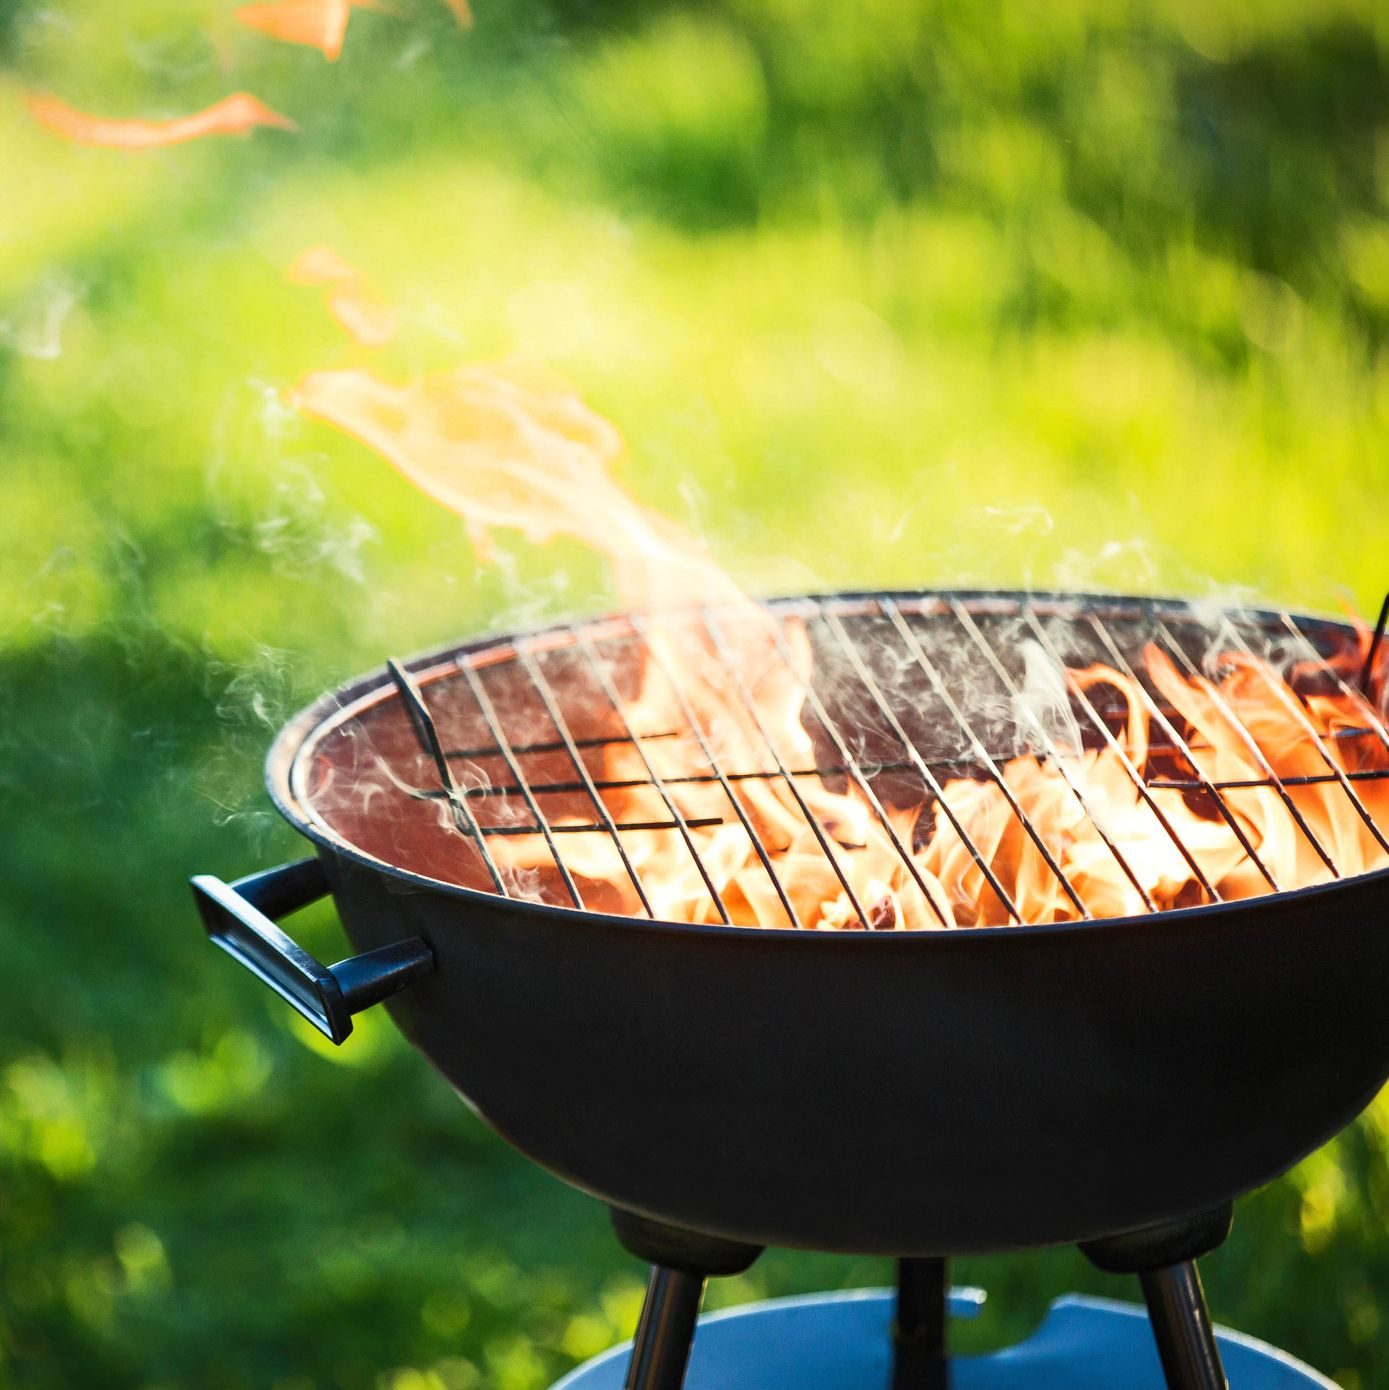 7 Best Grill Brushes, According to Cooking and Cleaning Experts